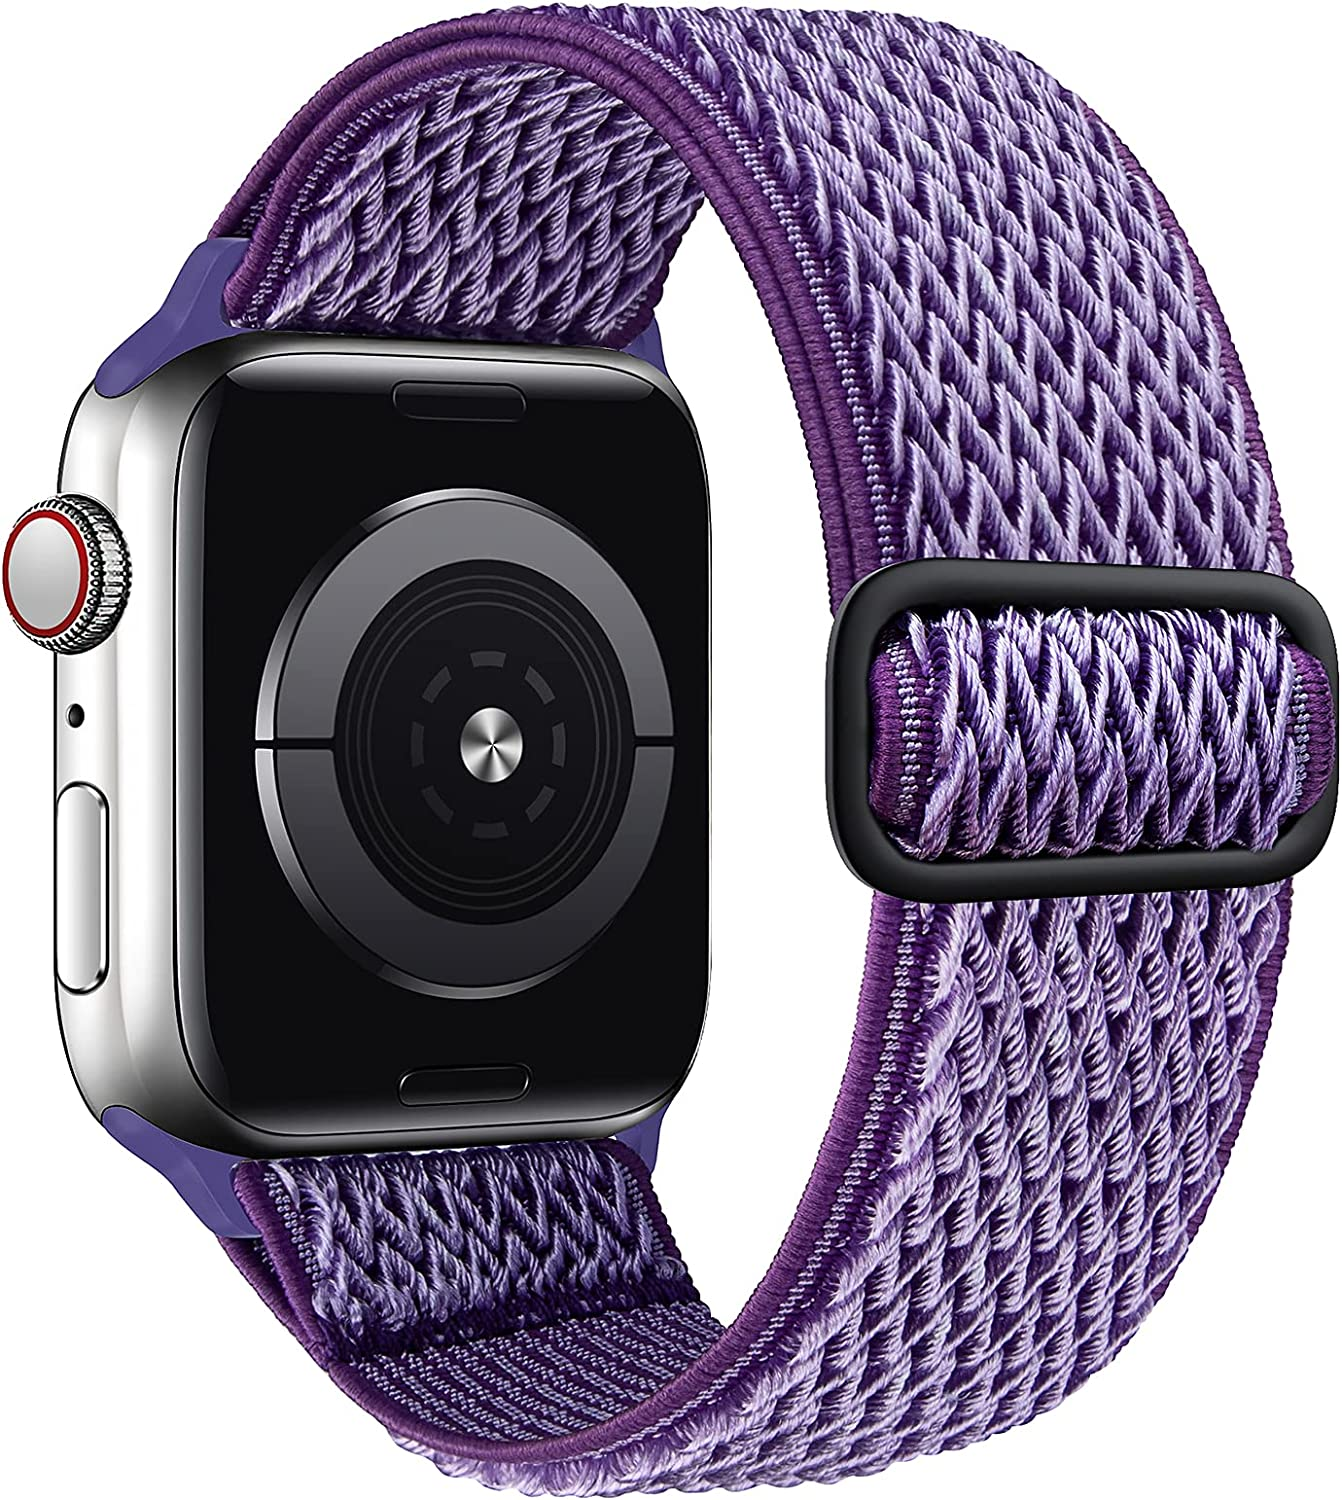 SAMYERLEN Stretchy Solo Loop Bands Compatible with Apple Watch Band 38mm 40mm 42mm 44mm for Men Women Adjustable Weave Elastic Braided Nylon Wristband for iWatch Series 6 5 4 3 2 1 SE